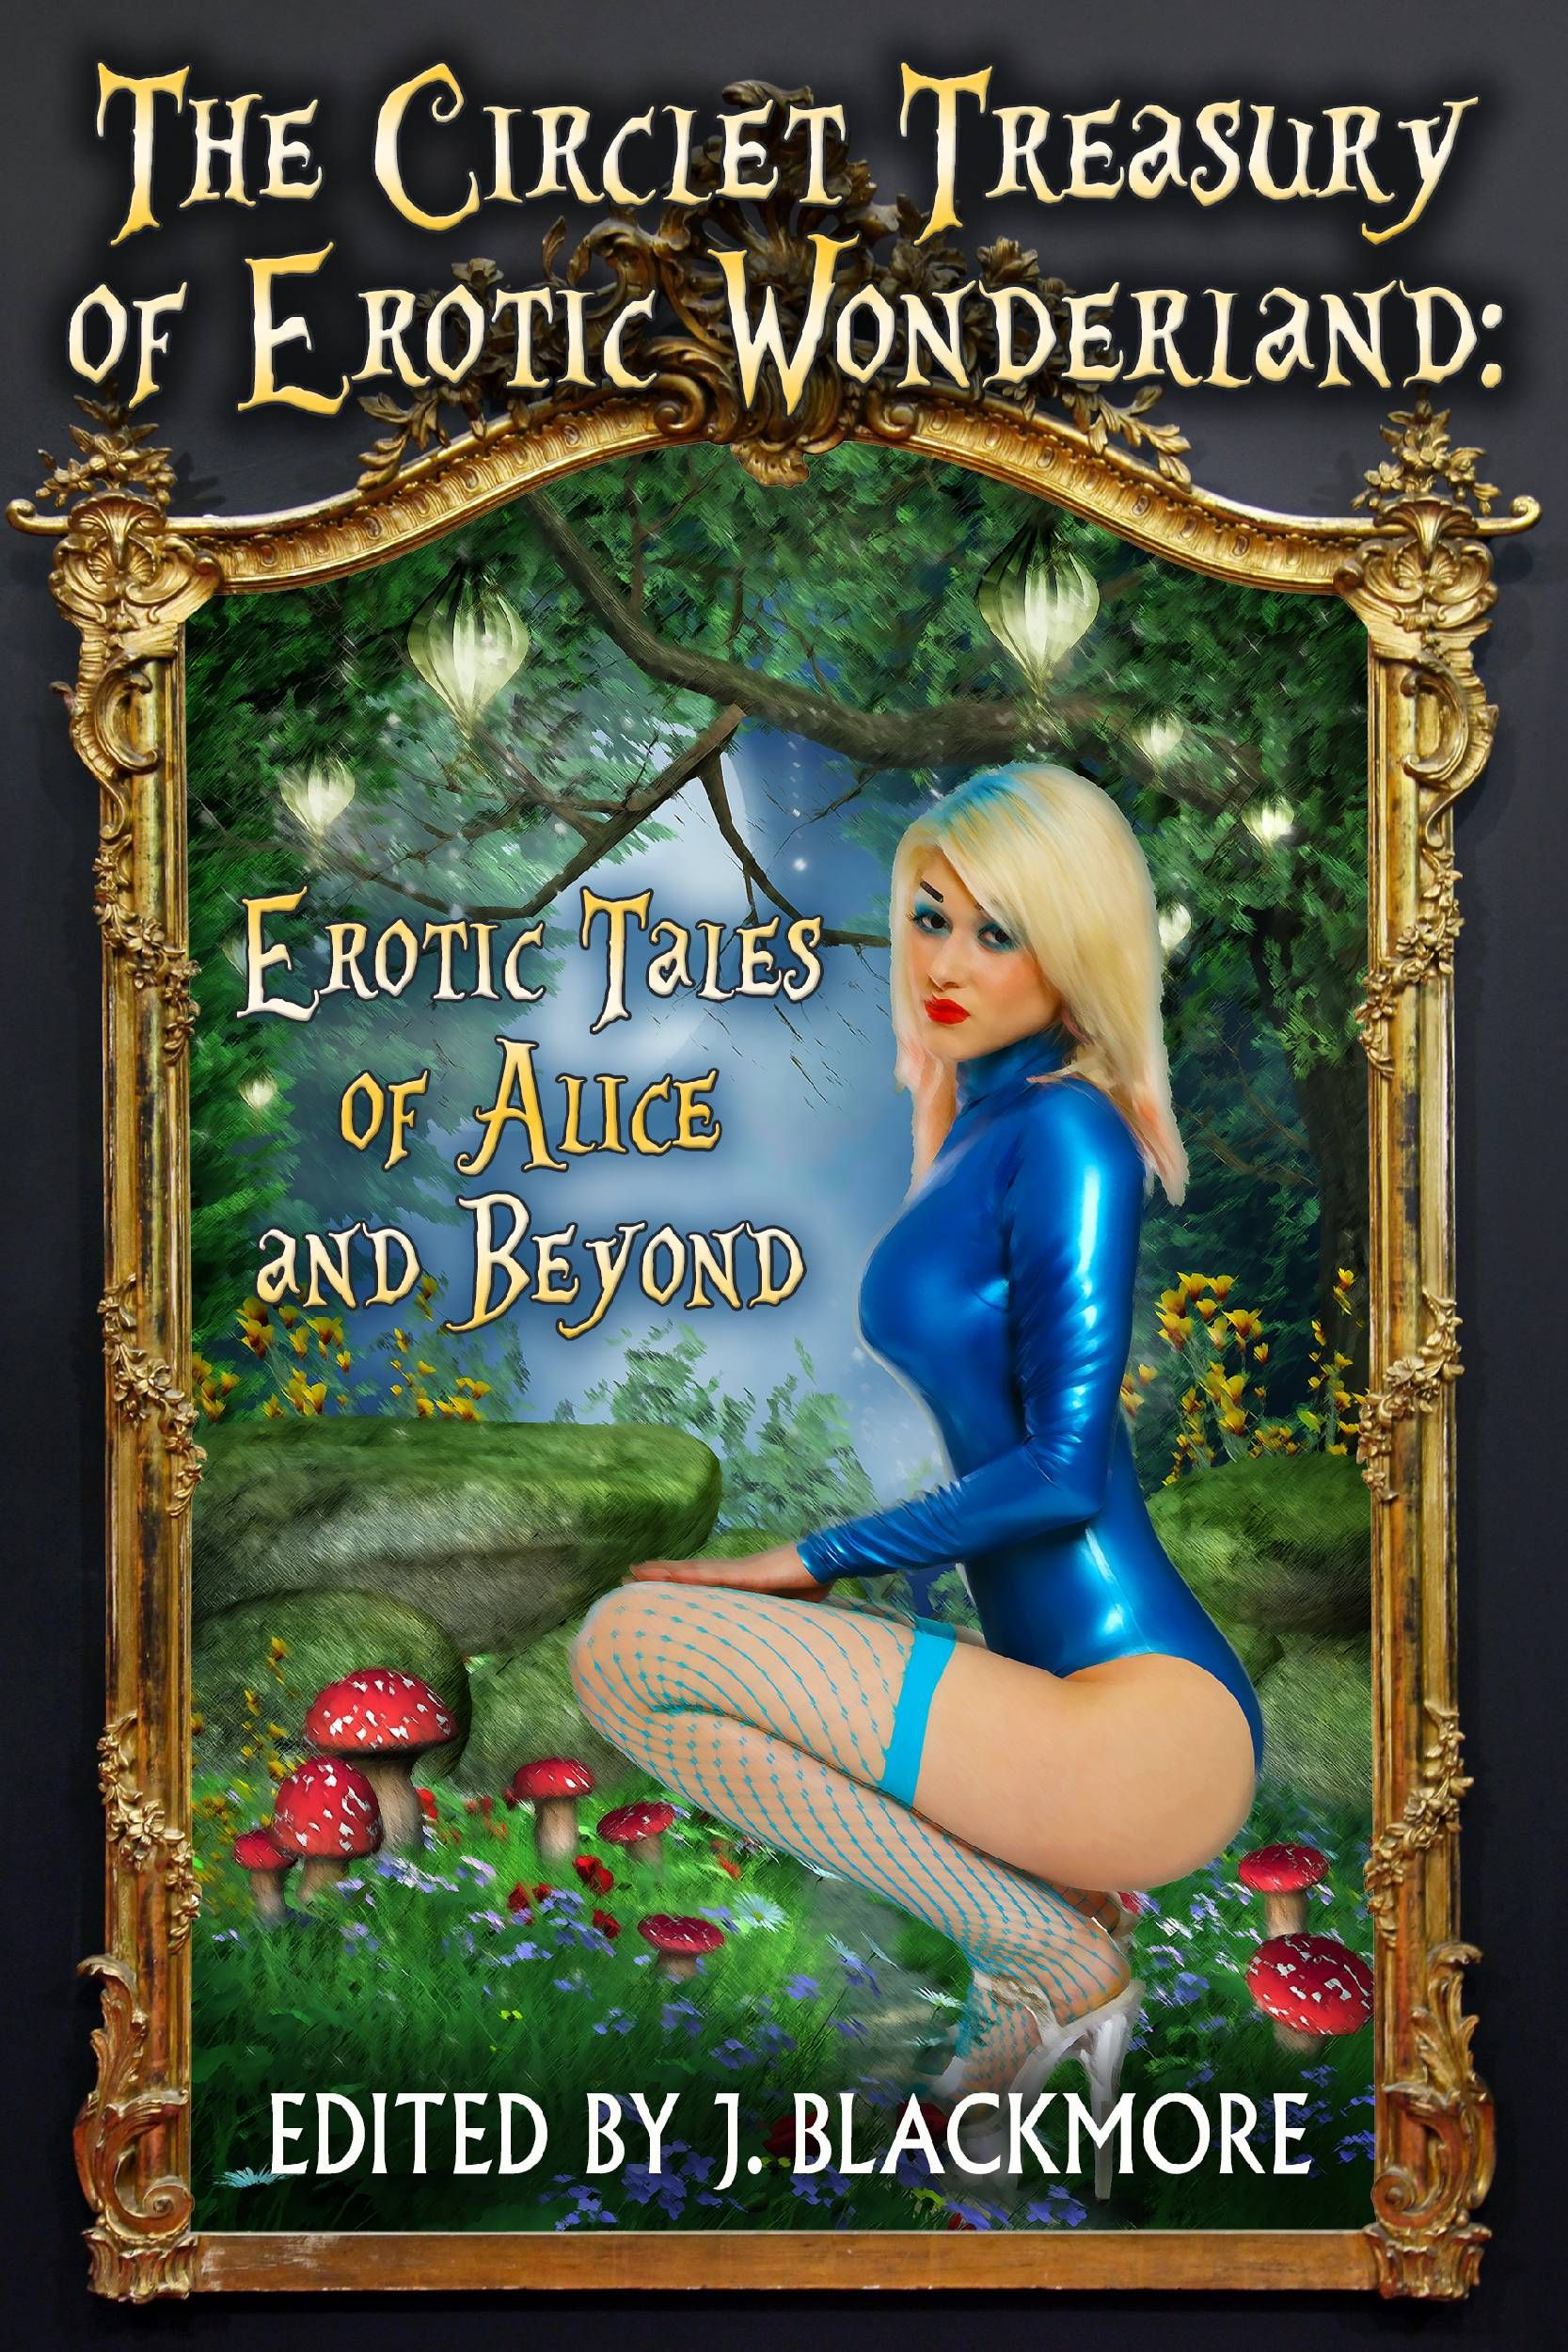 In This Circlet Treasury Of Erotic Alice In Wonderland Stories Youll Find Ten Unique Tales Of Erotic Imagination Based On The Classic Journey Created By